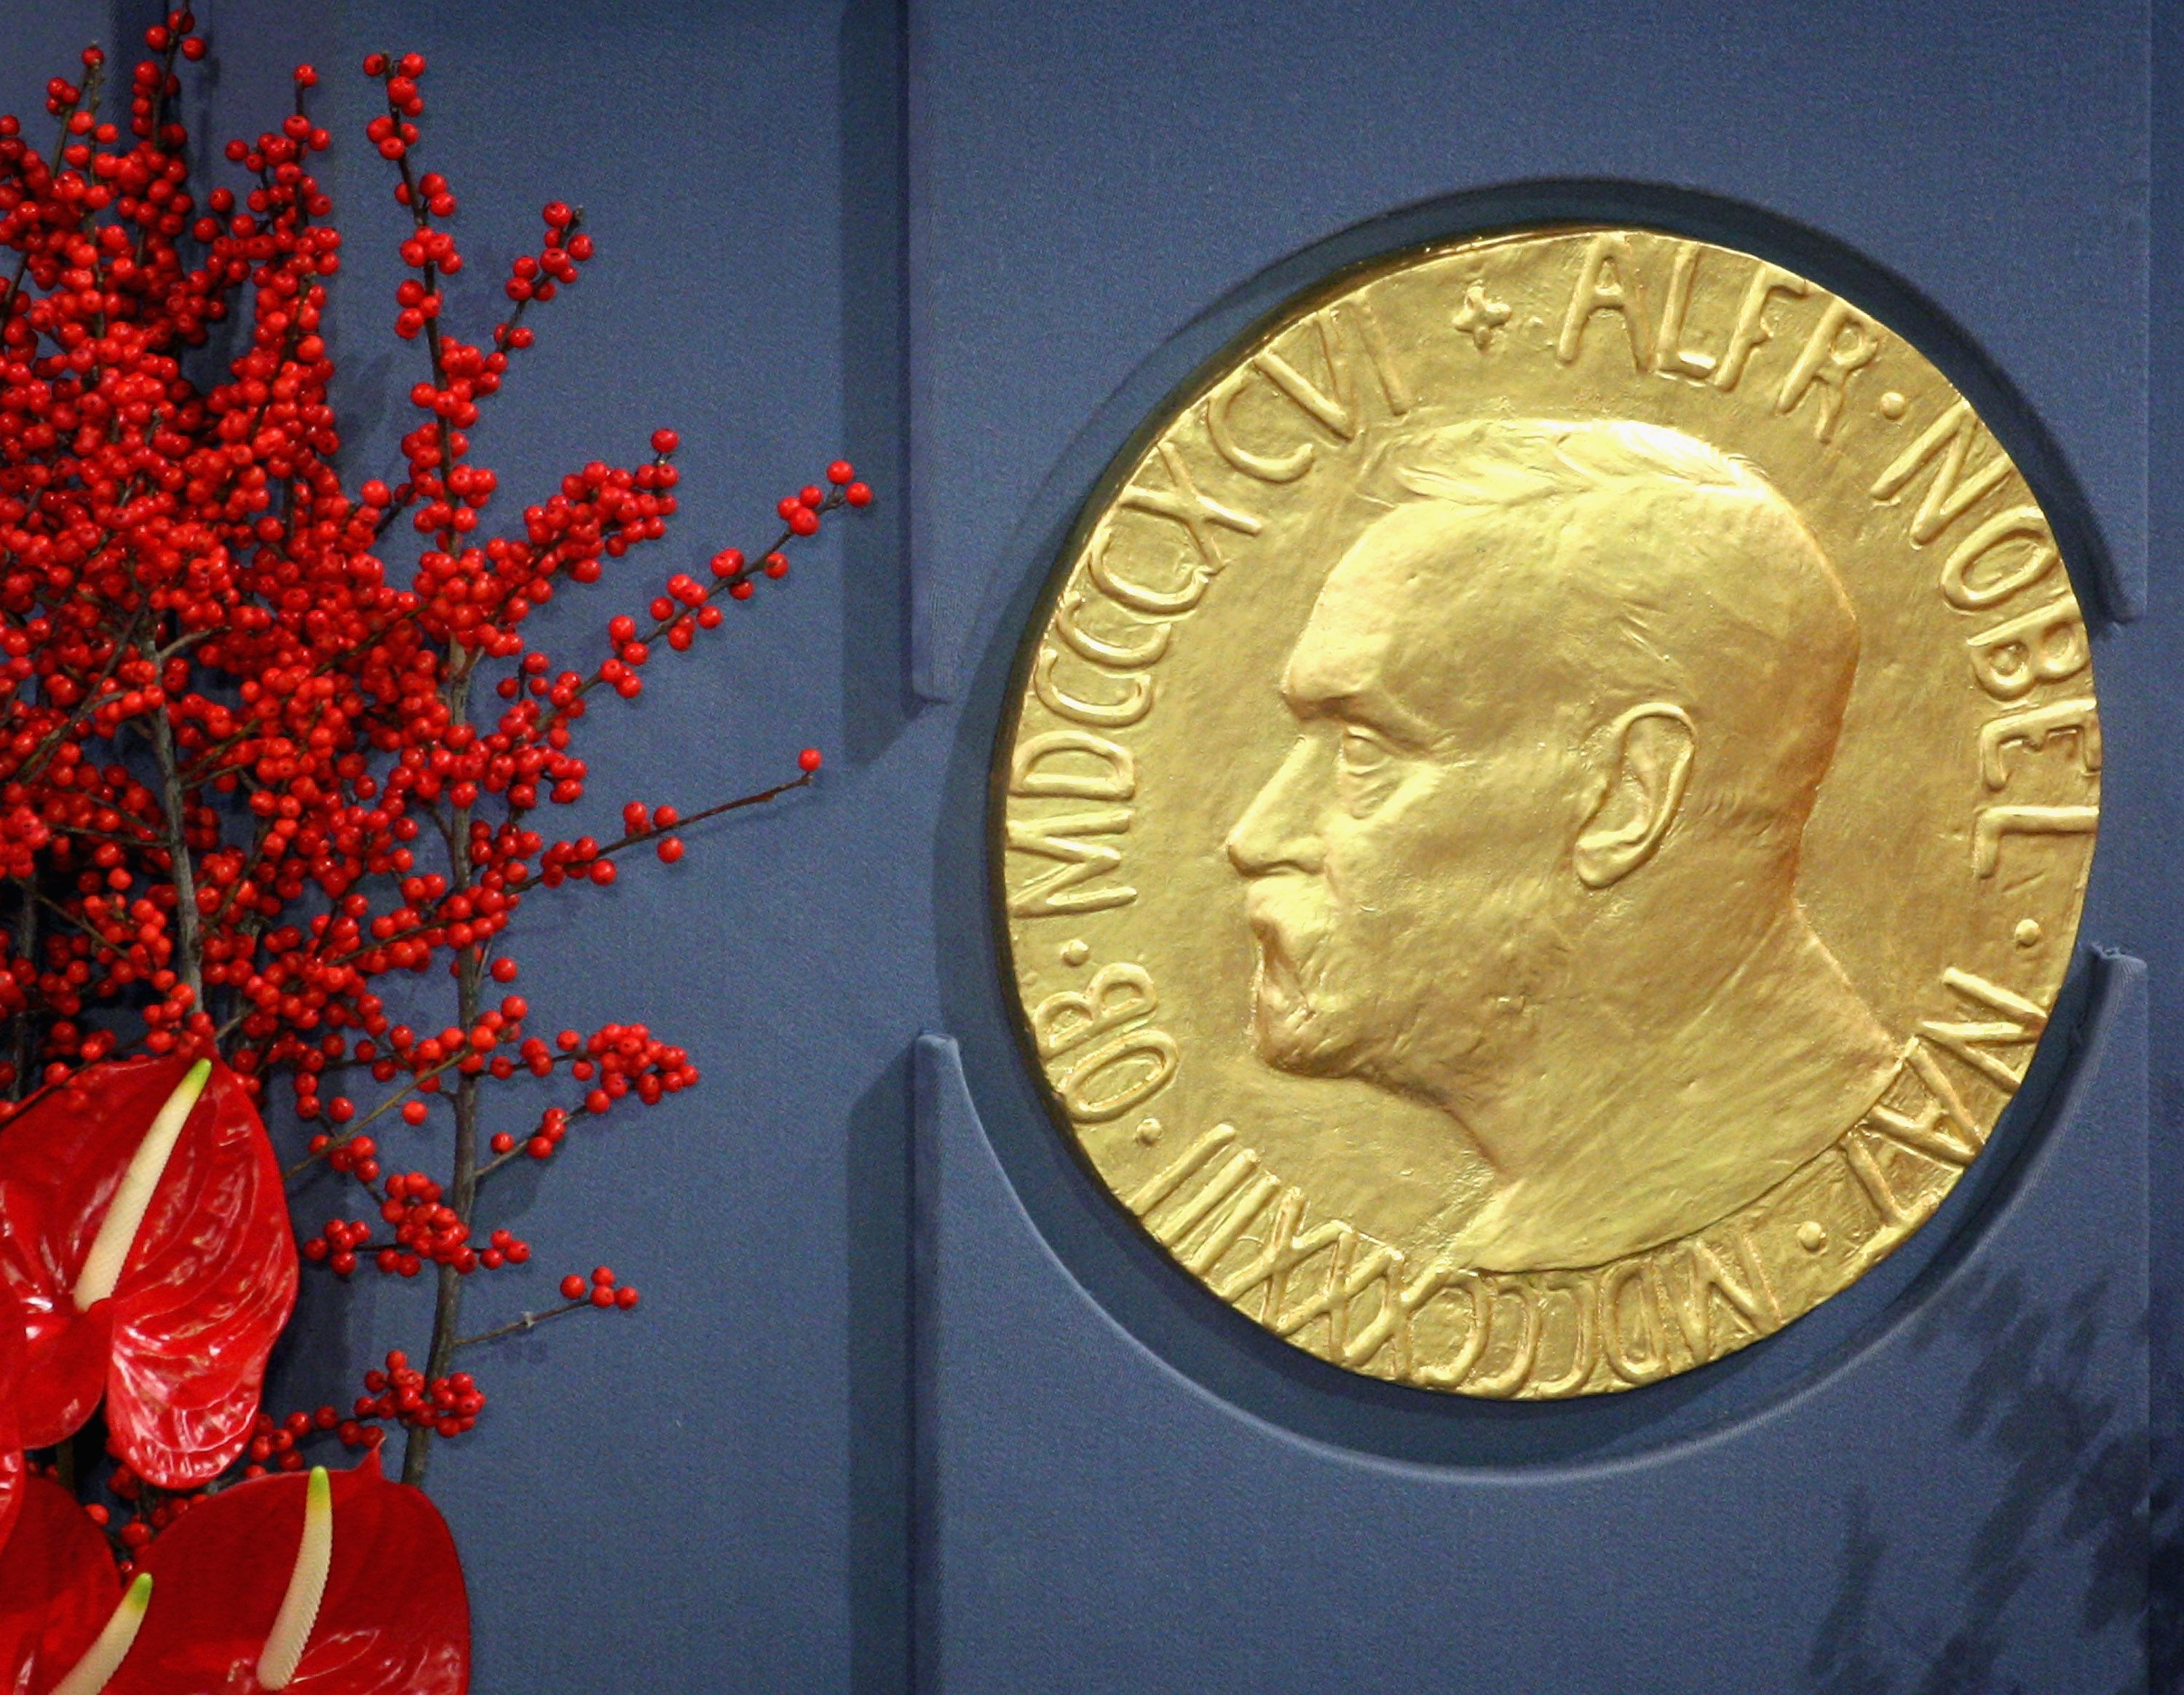 Meet the 2020 Nobel Laureates